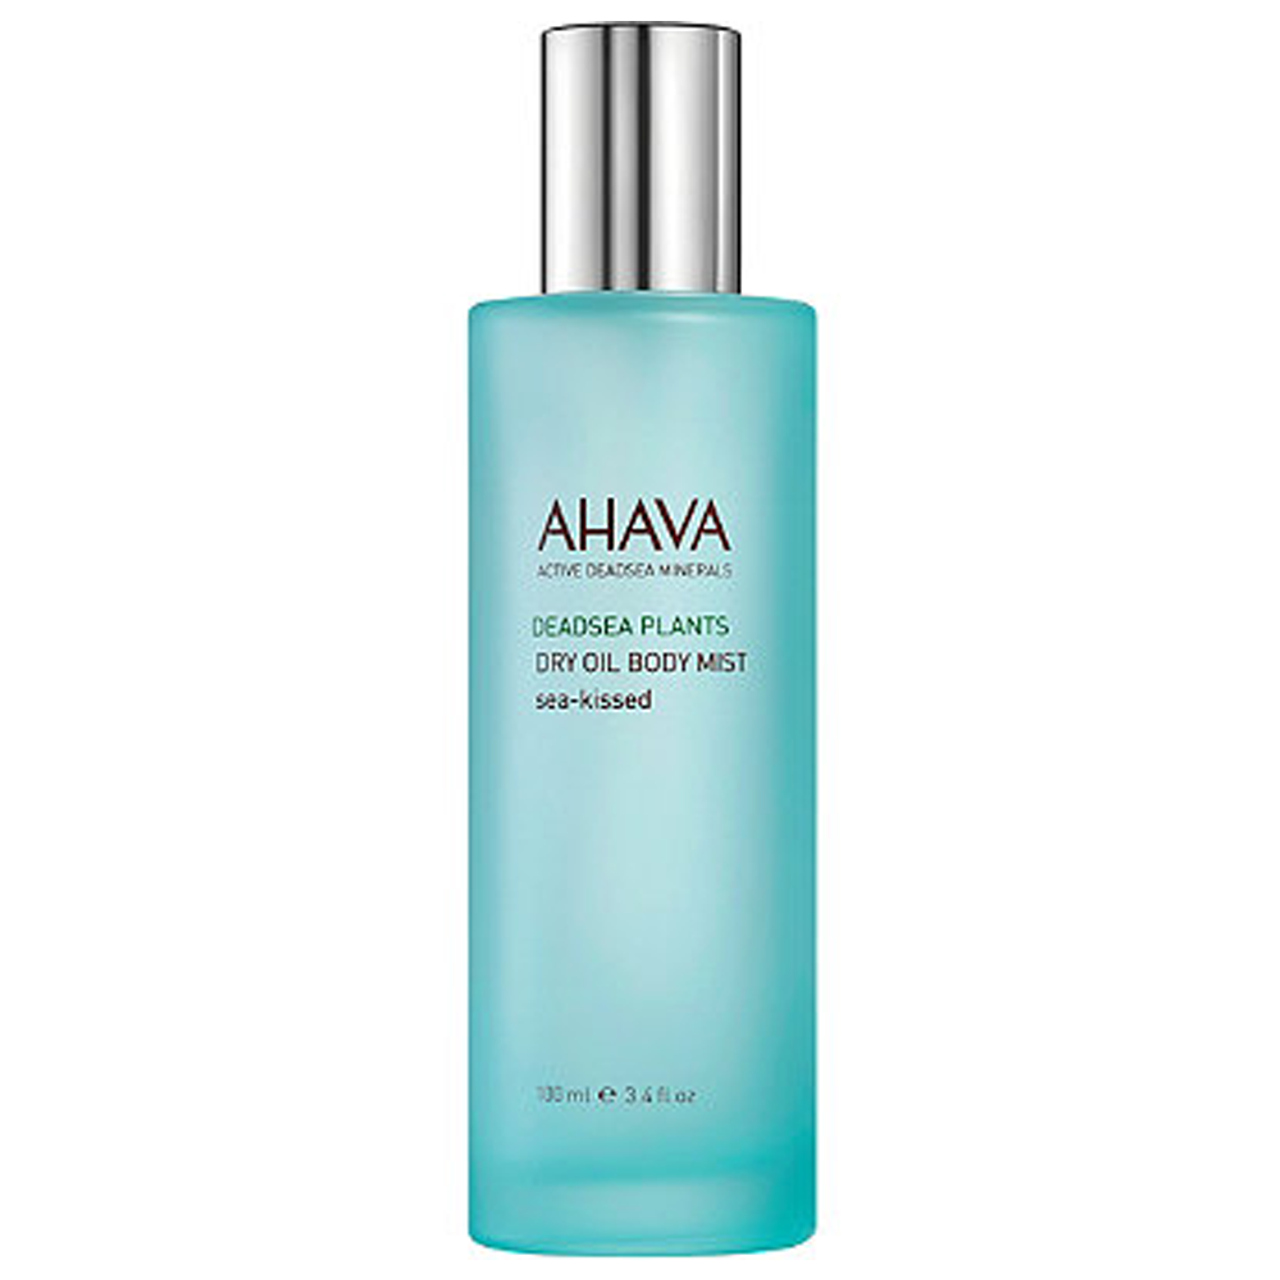 AHAVA Dry Oil Body Mist Sea Kissed